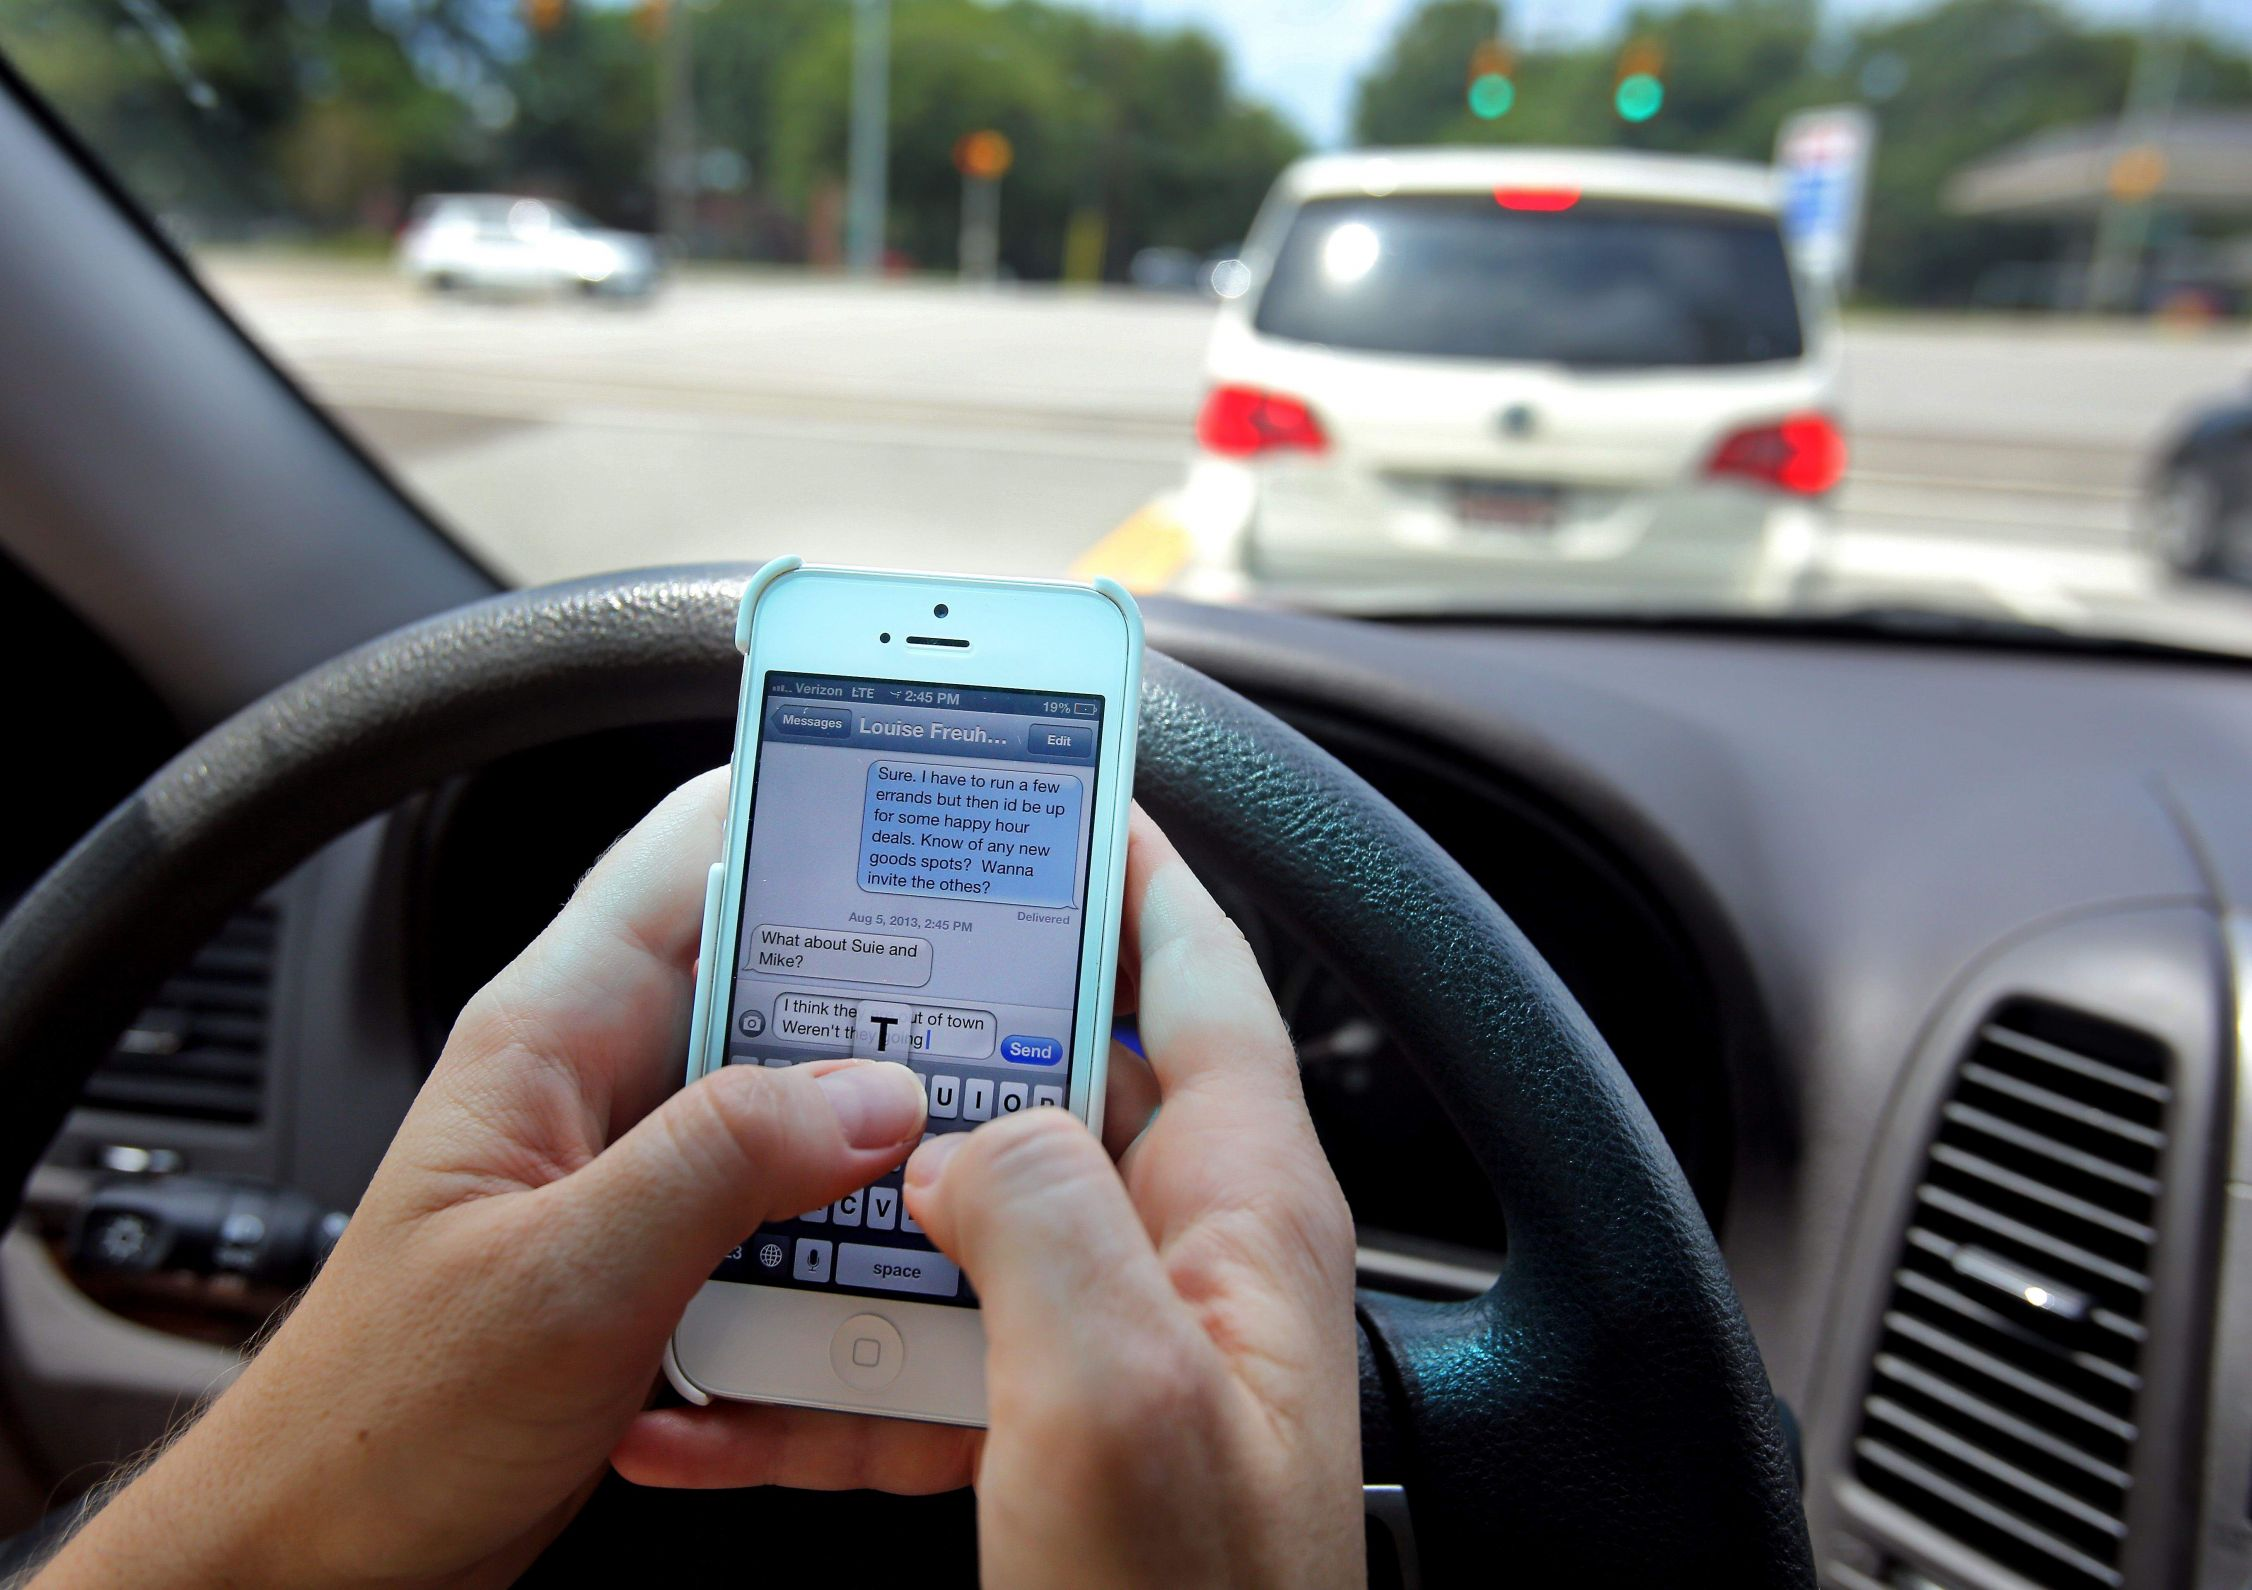 Texting and Driving - Shove It Up Your Ass Blank Template